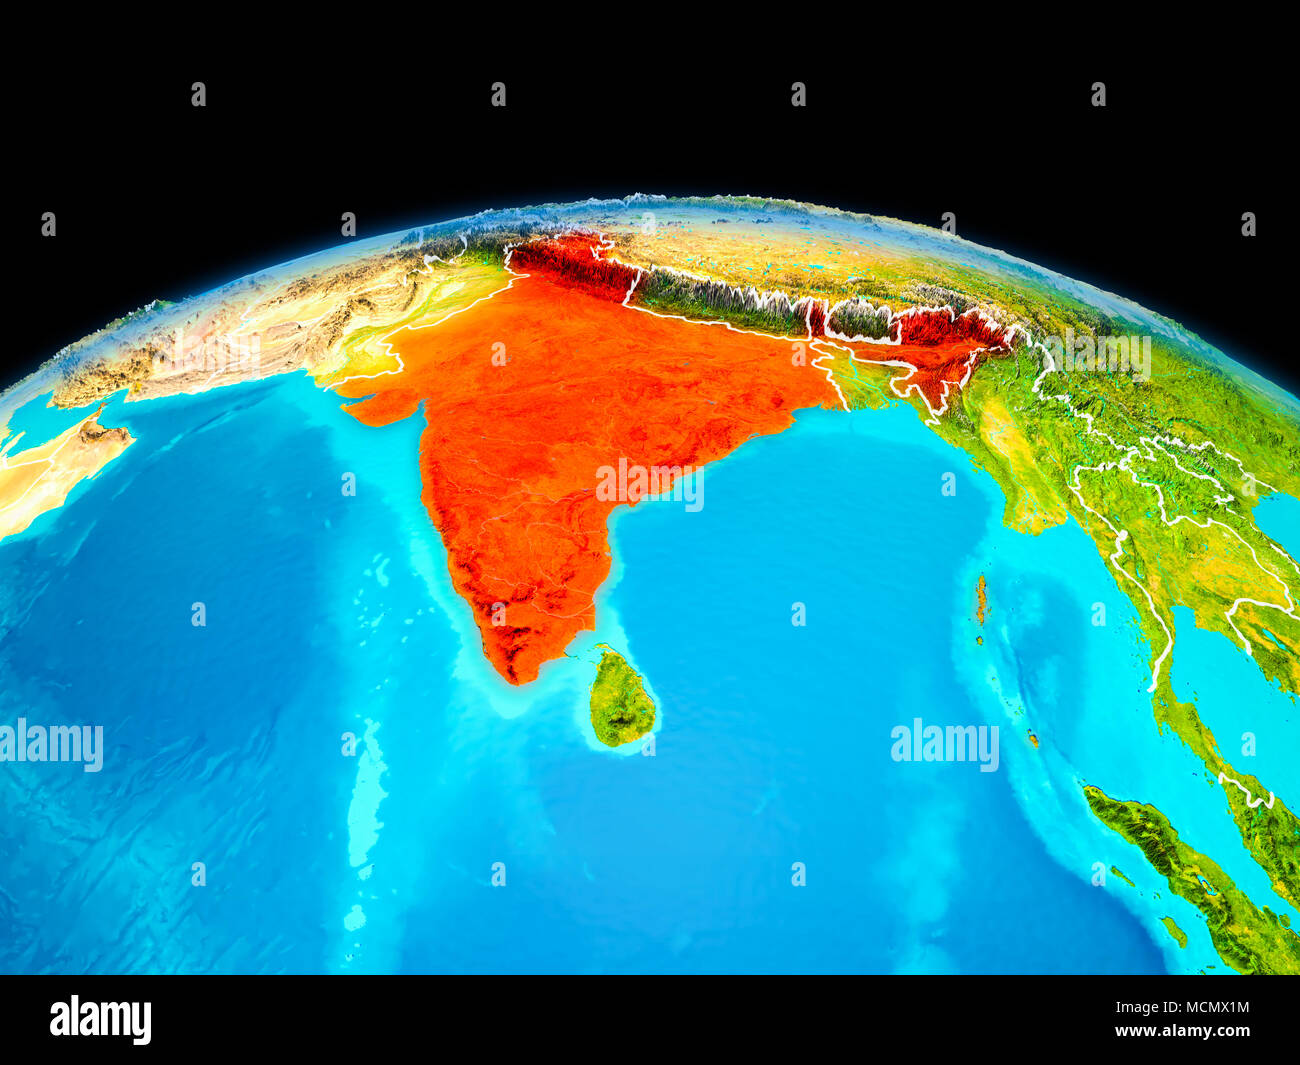 Satellite image india stock photos satellite image india stock satellite view of india highlighted in red on planet earth with borderlines 3d illustration gumiabroncs Choice Image